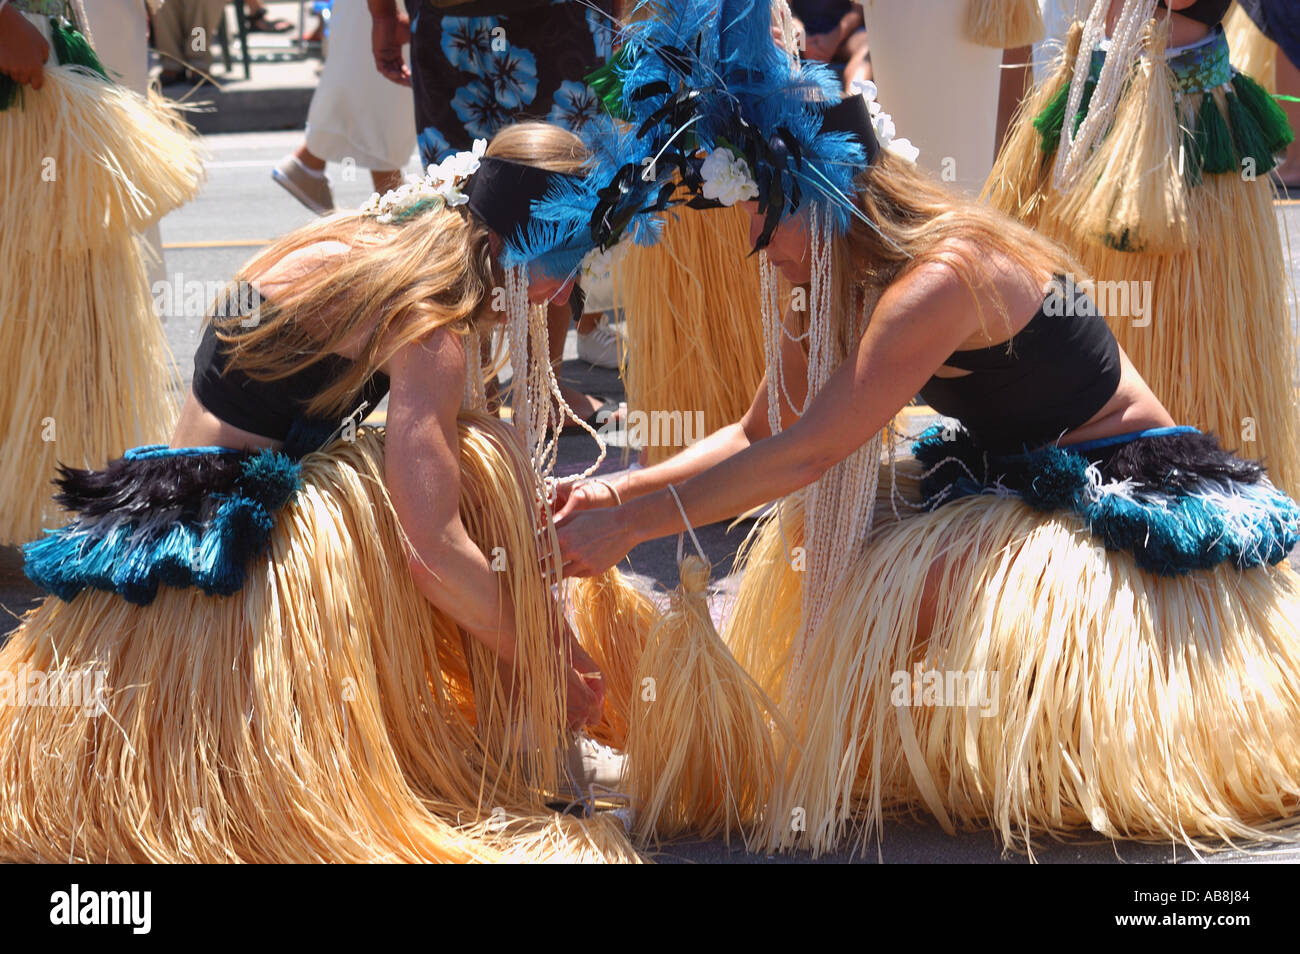 Summer Solstice Parade - Stock Image